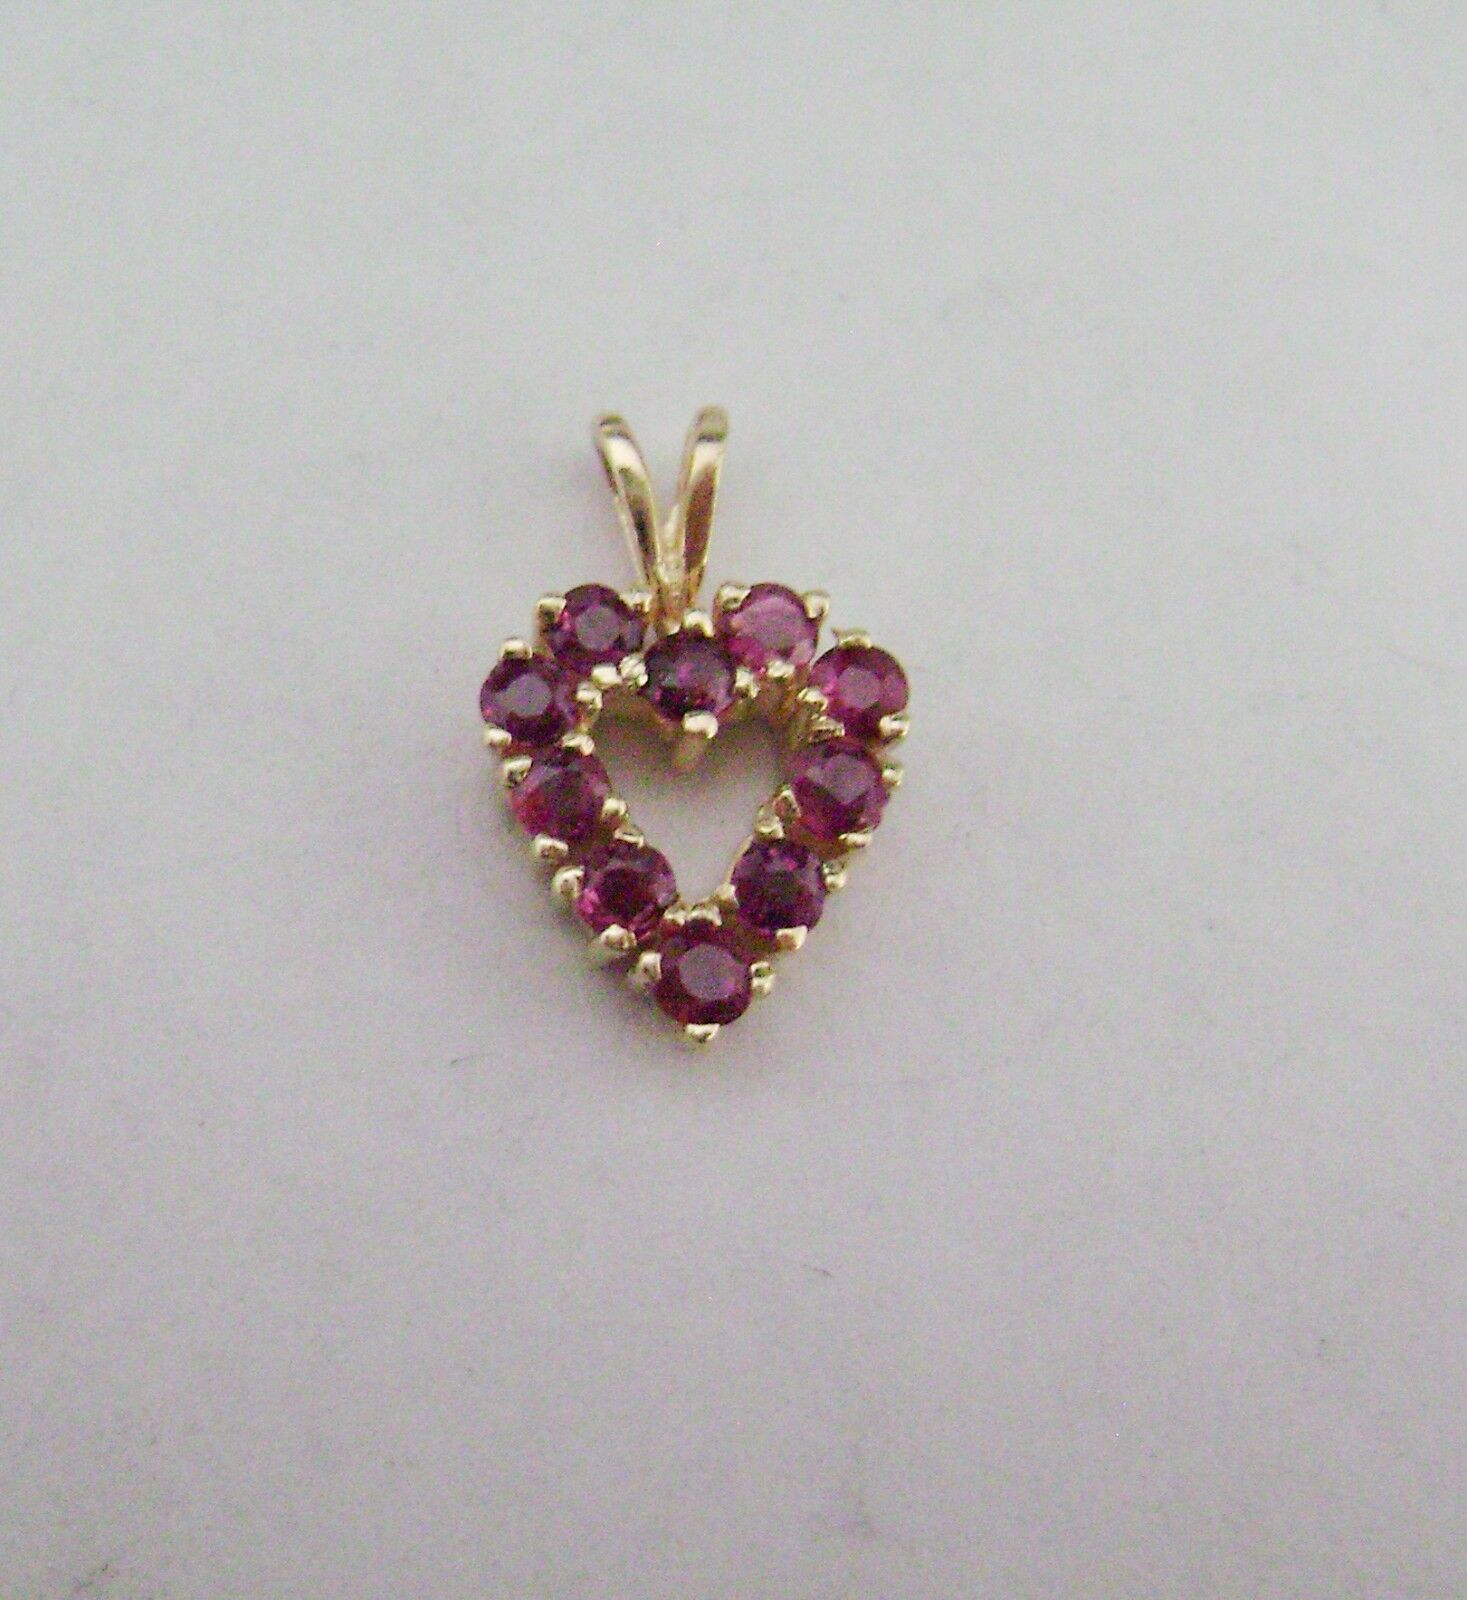 14 kt Yellow gold Heart Shaped Pendant with Garnets                        dn